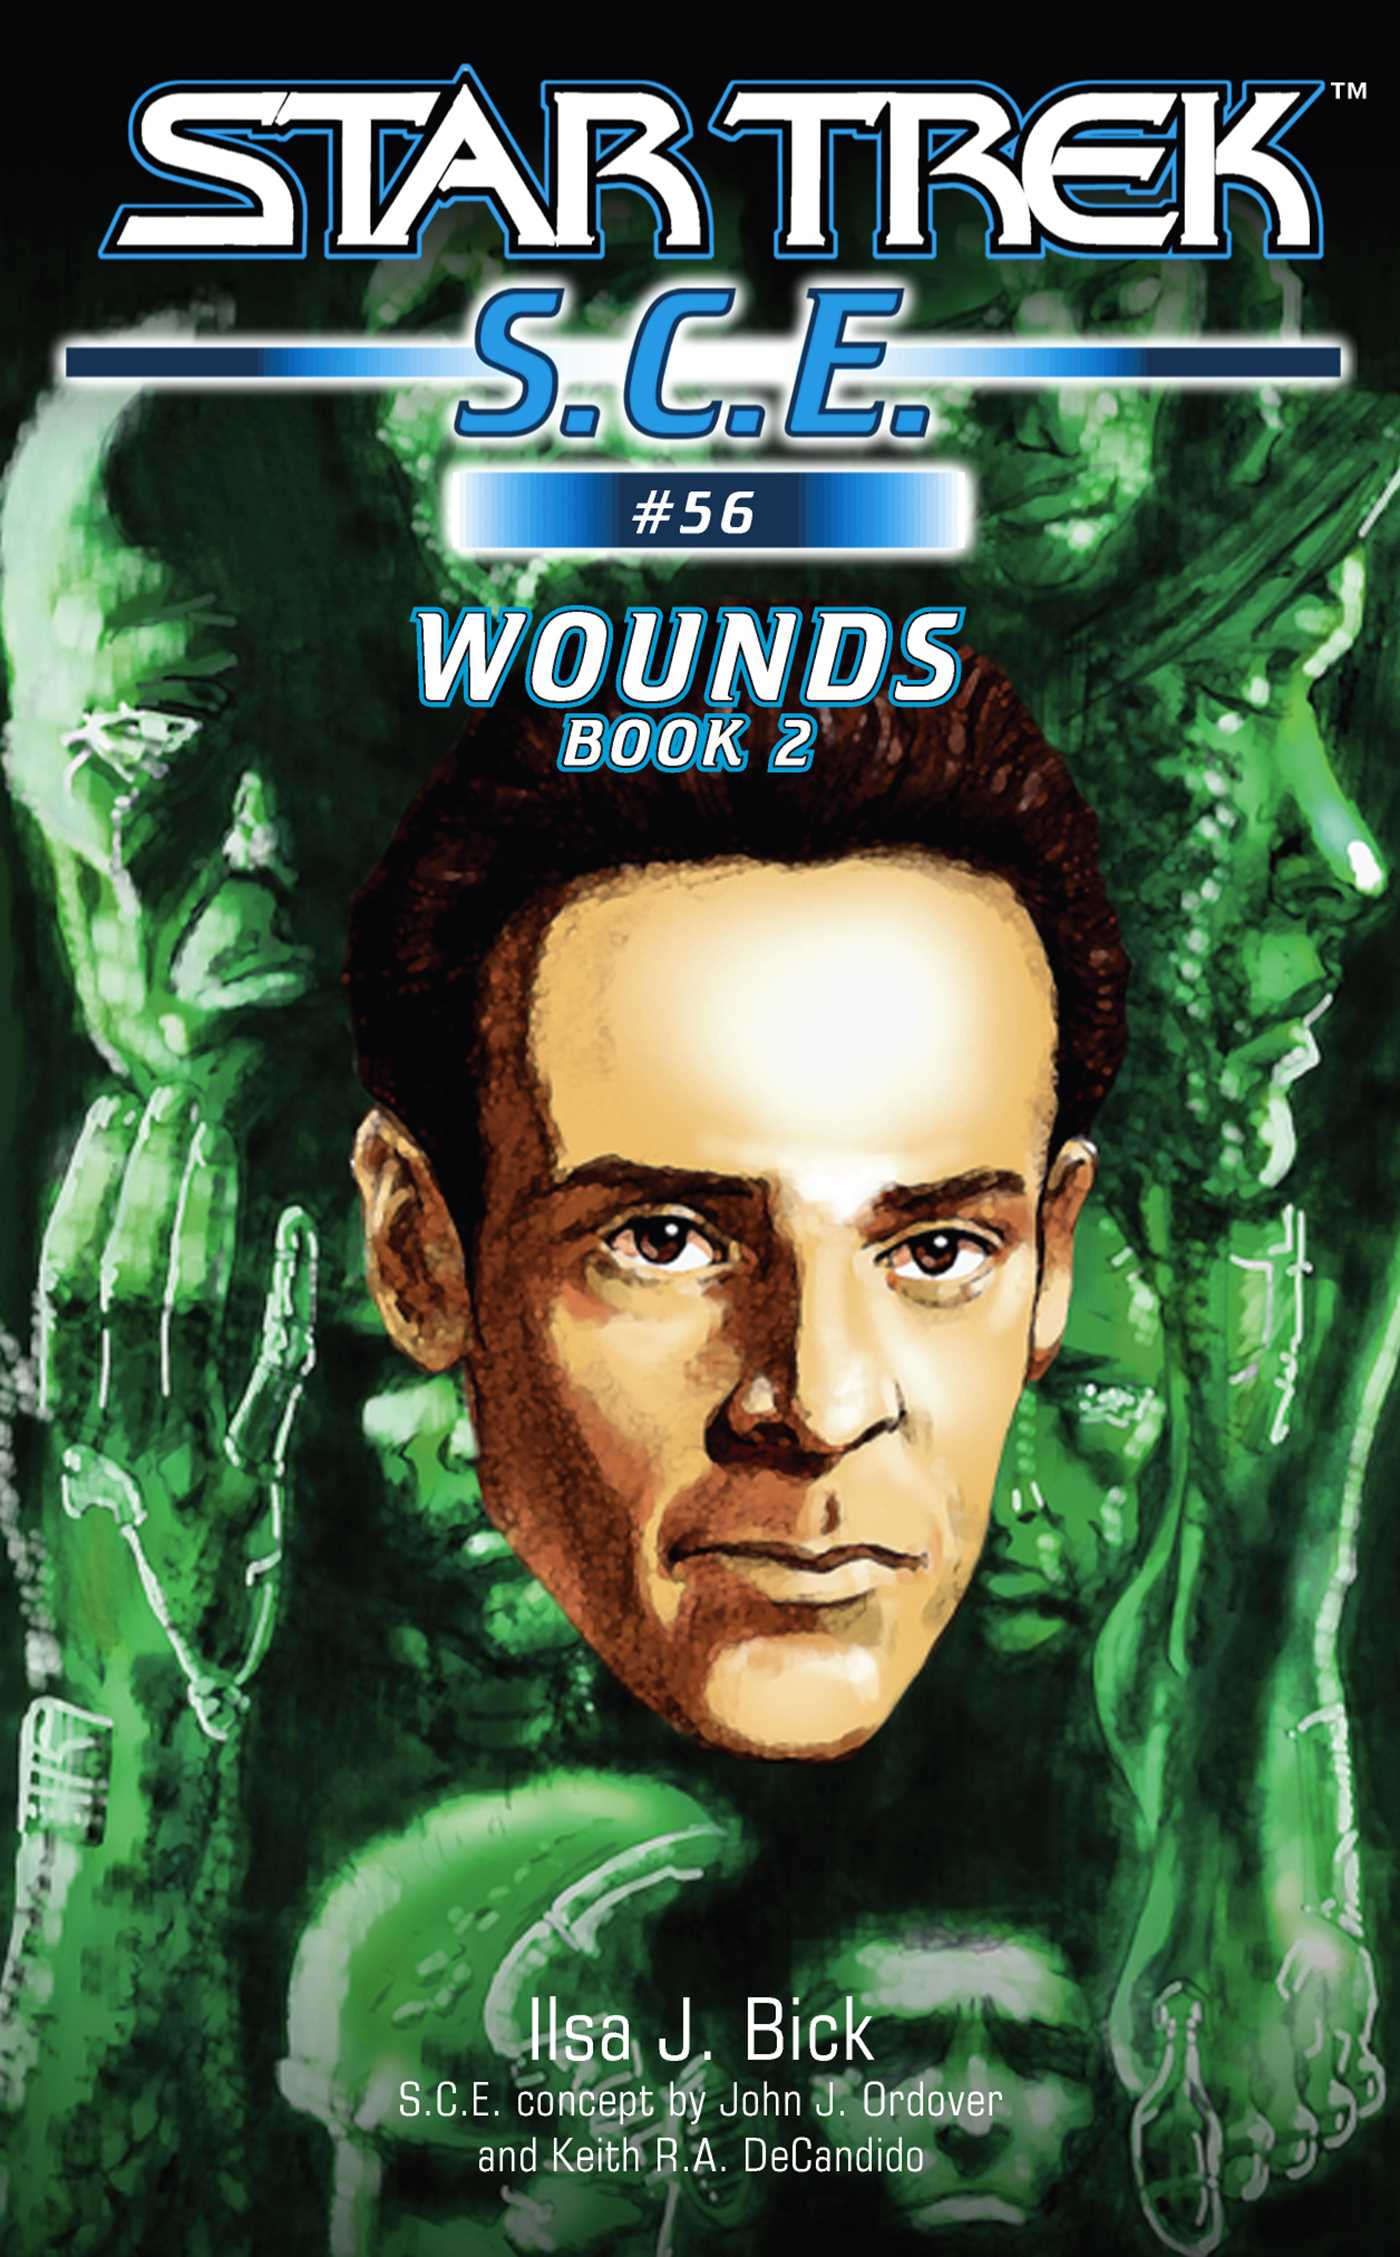 Star-trek-wounds-book-2-9781416509615_hr